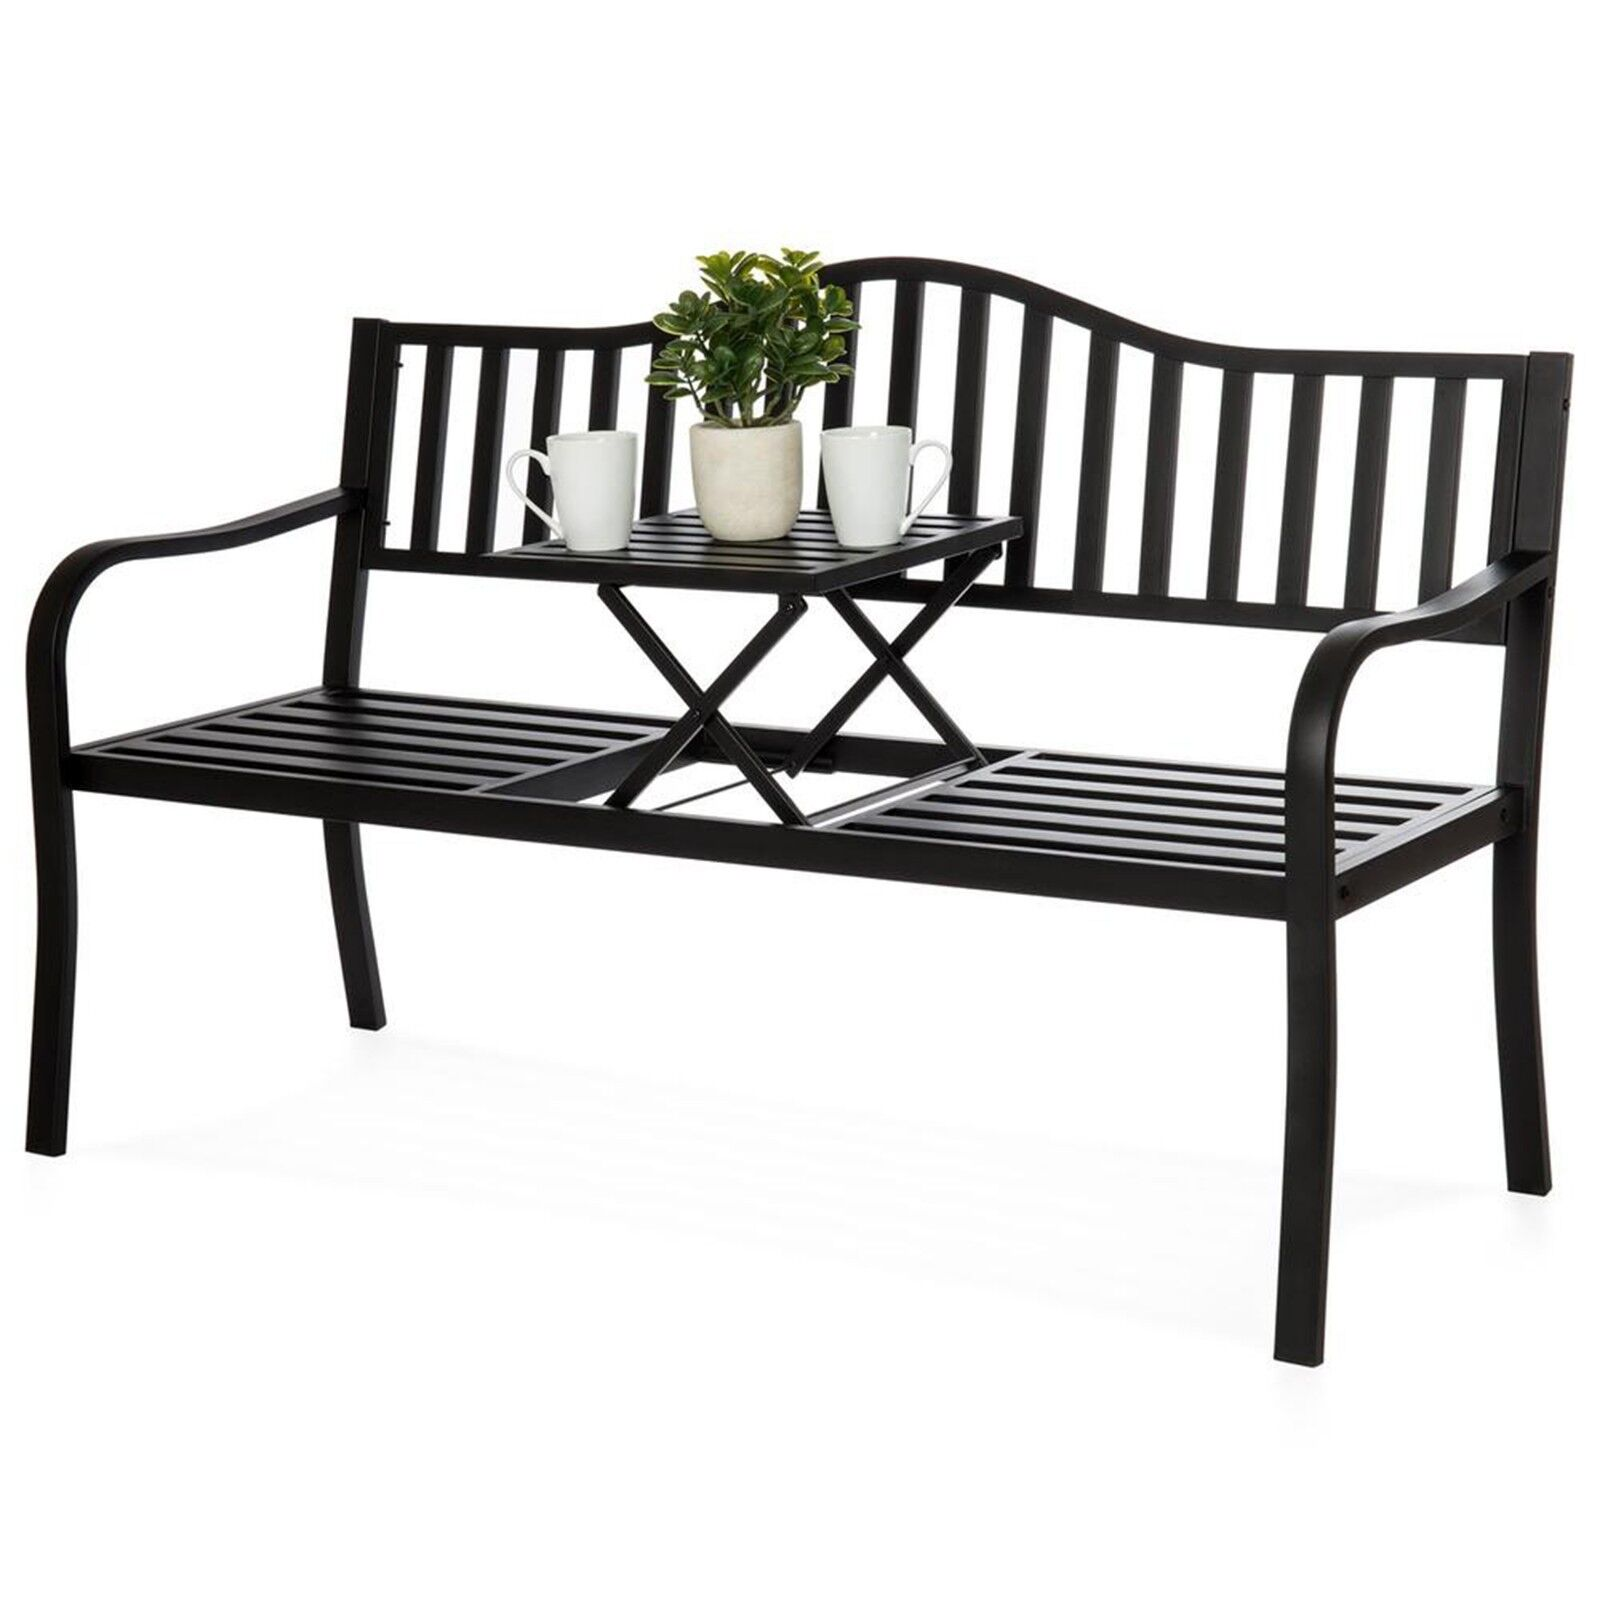 Metal Garden Bench Cast Iron Patio Furniture Porch Seat Adjustable